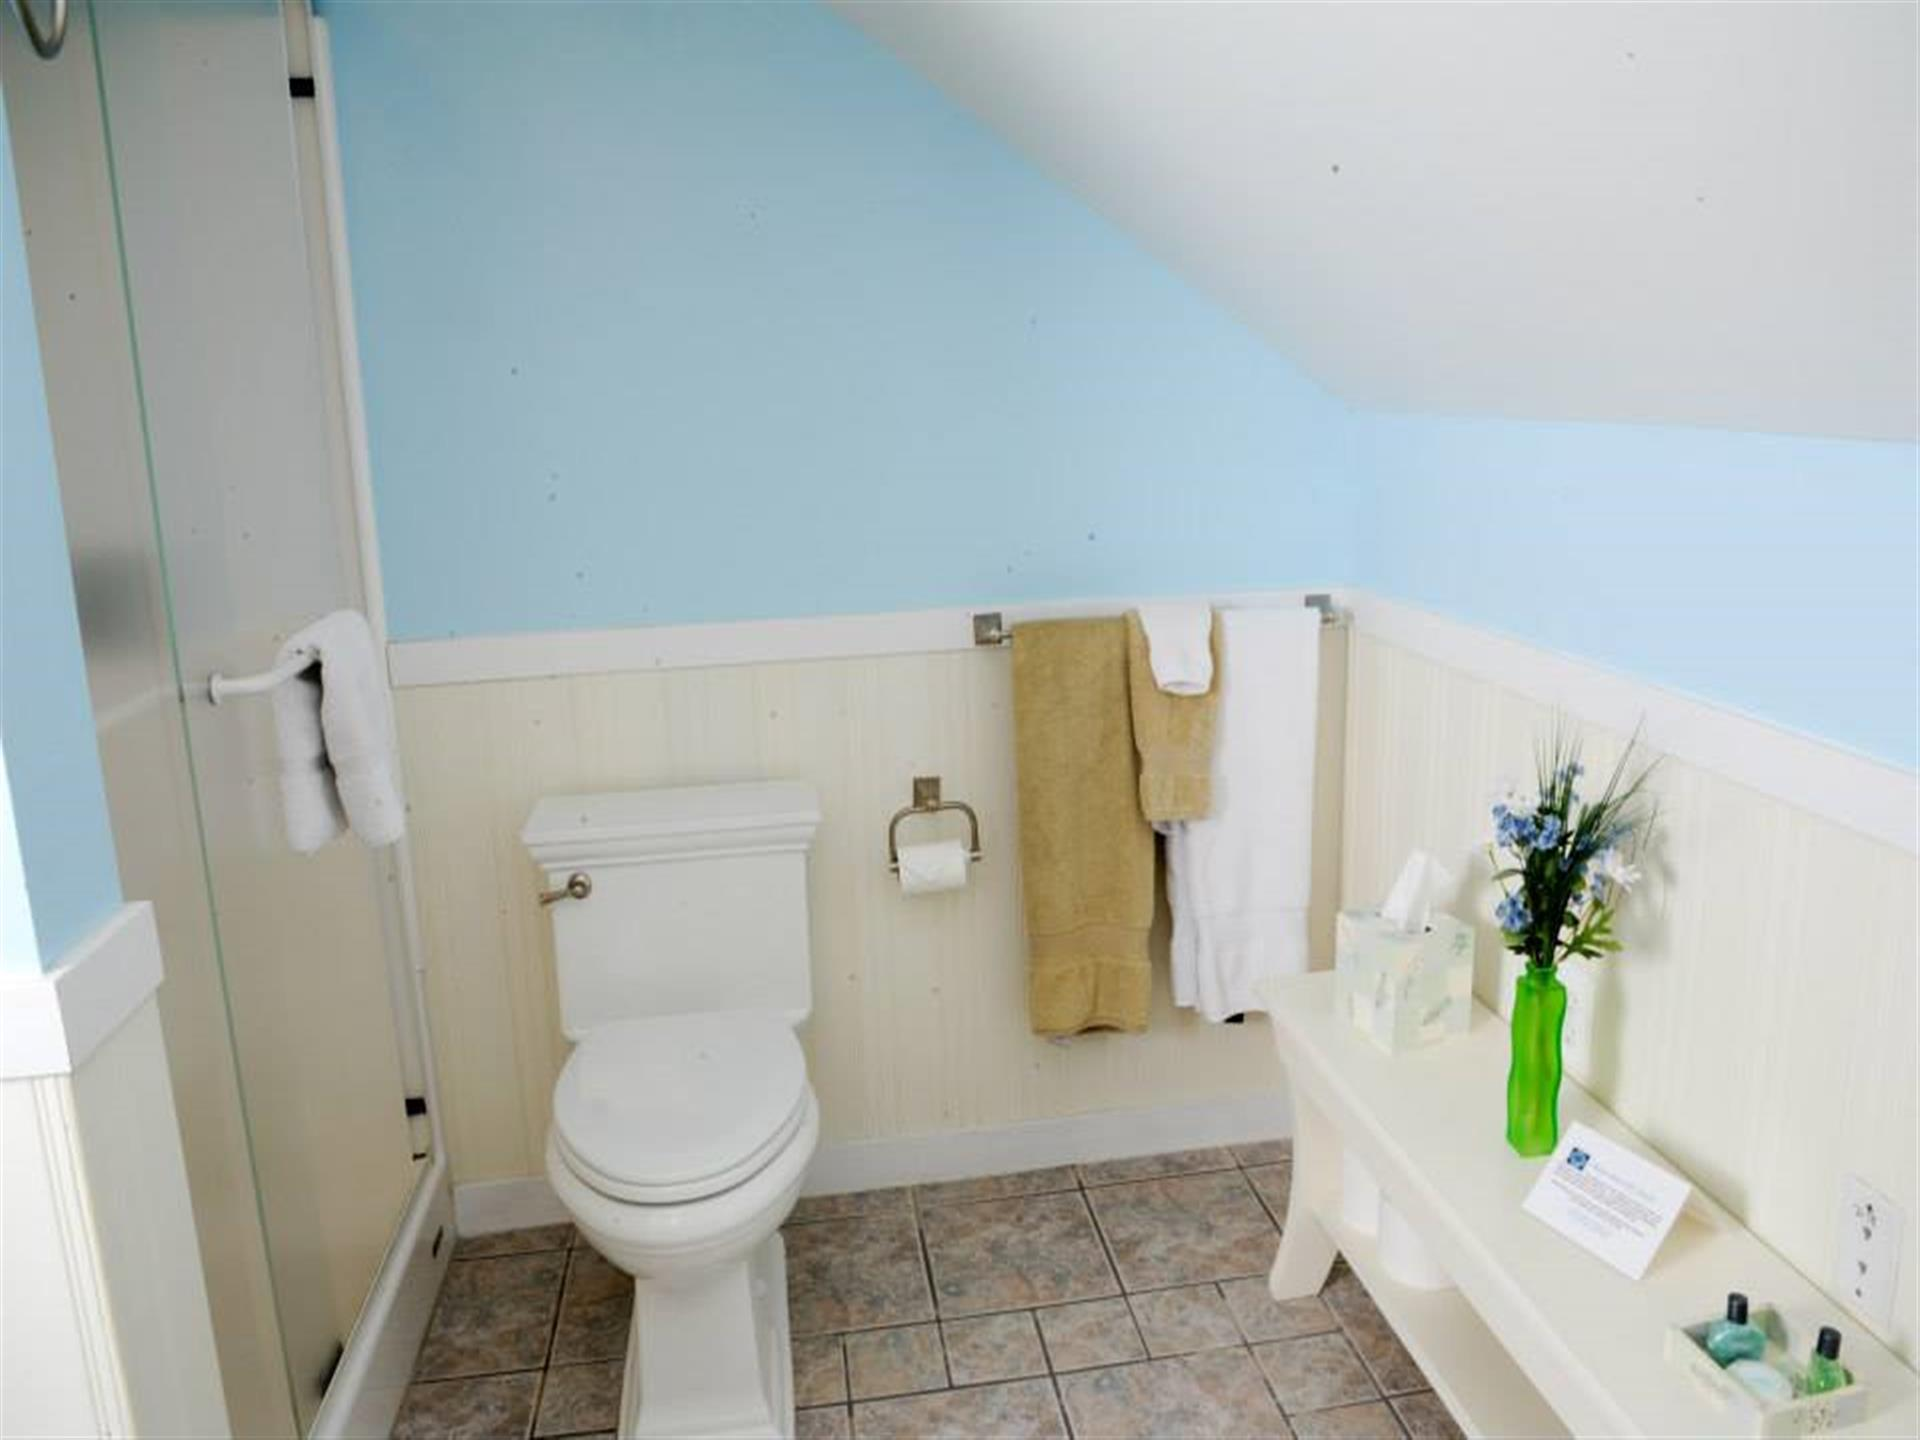 Suite 4 bathroom